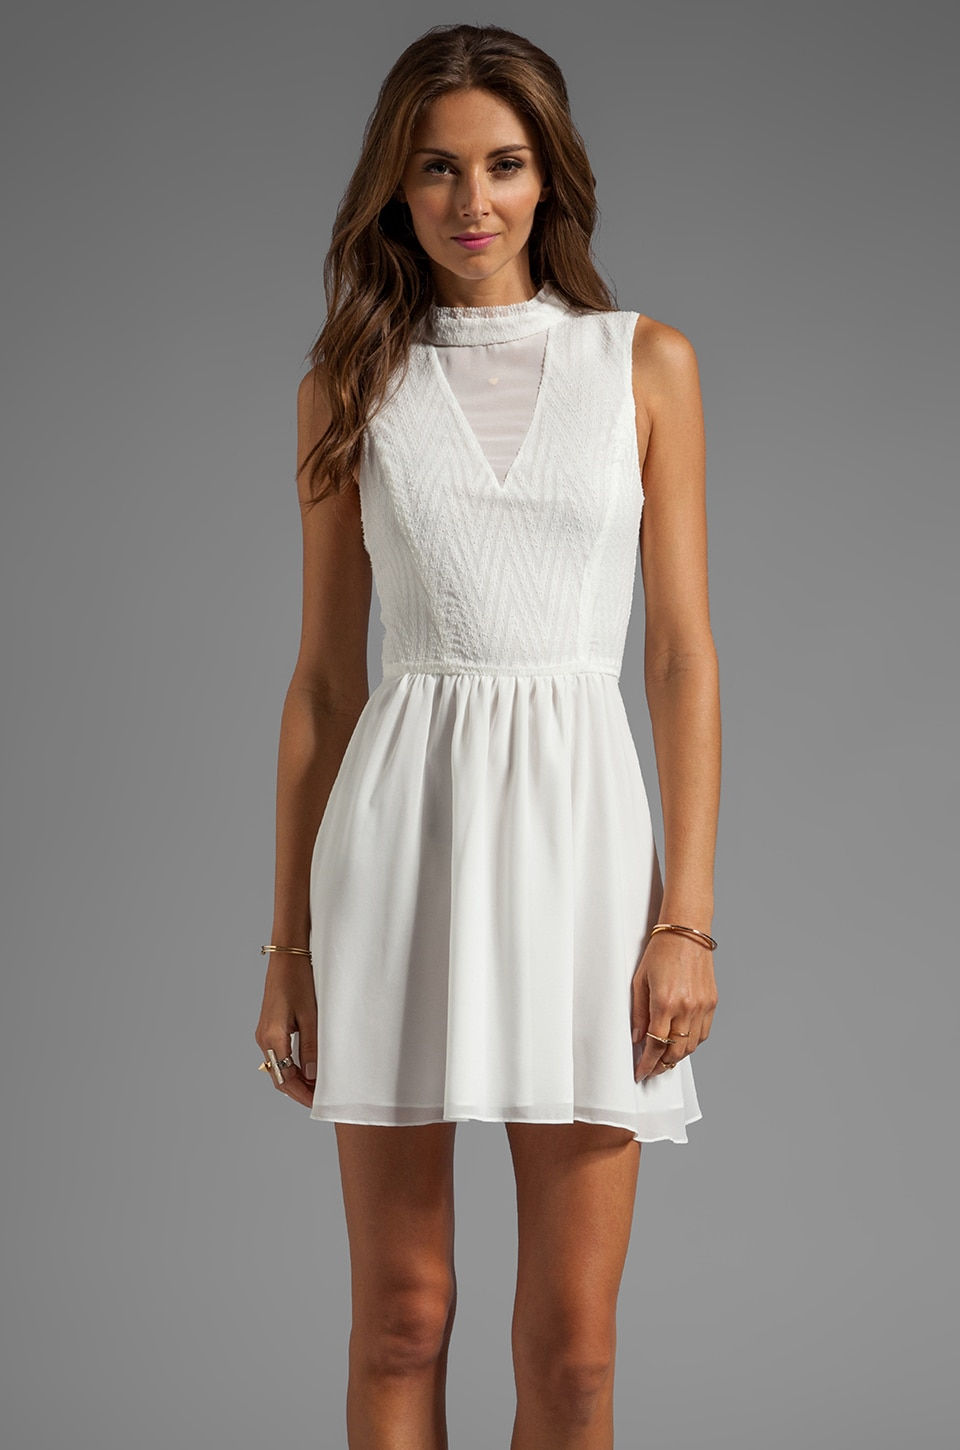 Dolce Vita Romana Zigzag Dobby Dress in White